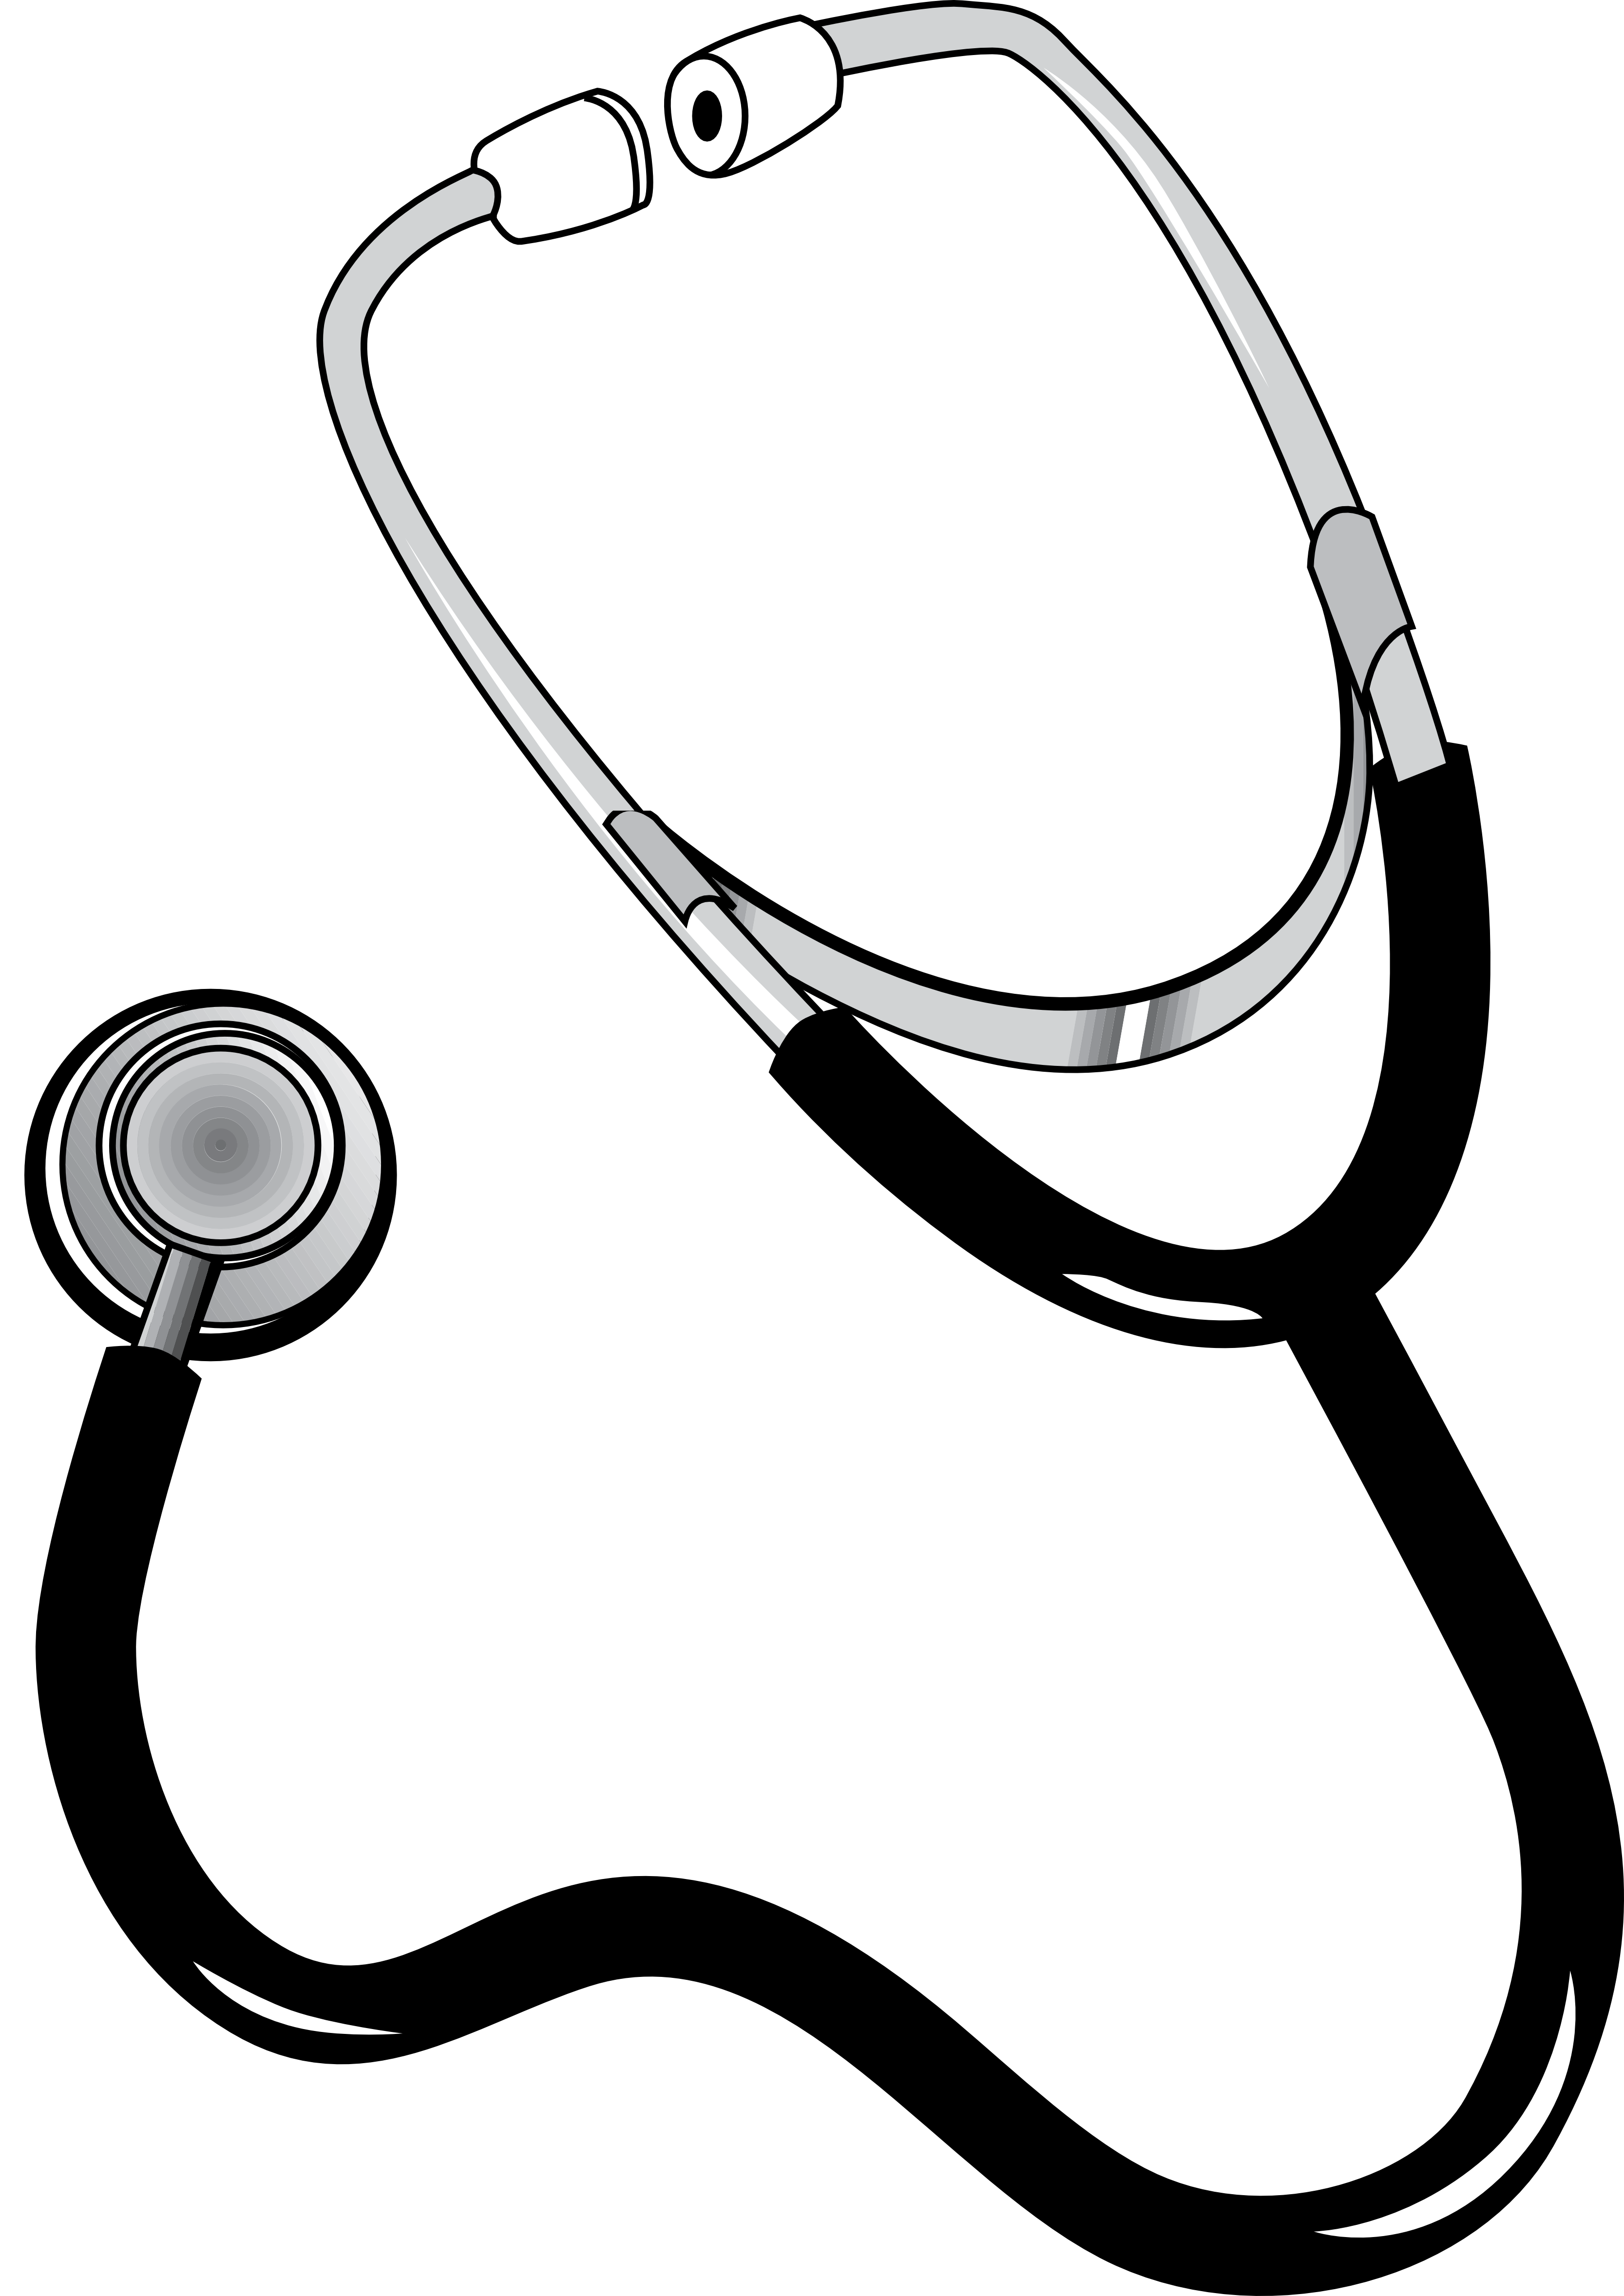 Free Picture Of Stethoscope, Download Free Clip Art, Free.